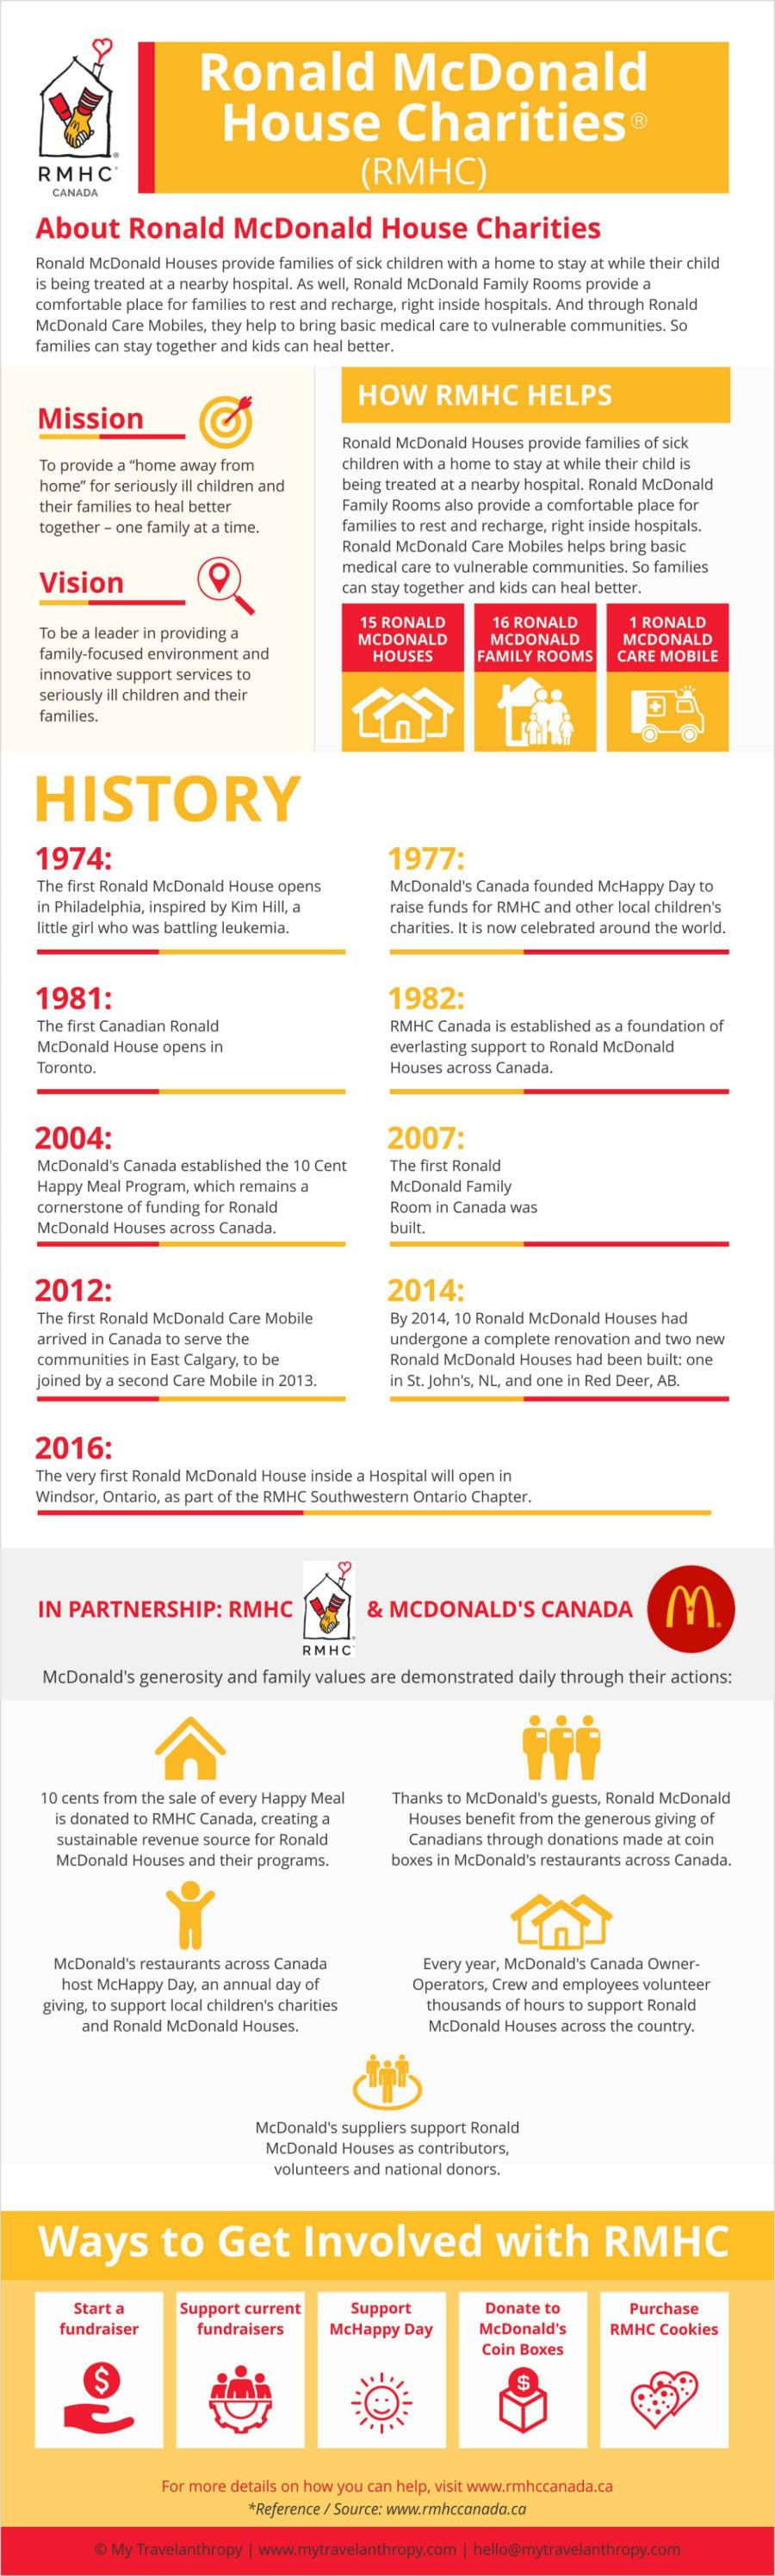 Ronald McDonald House Charities Canada Russia